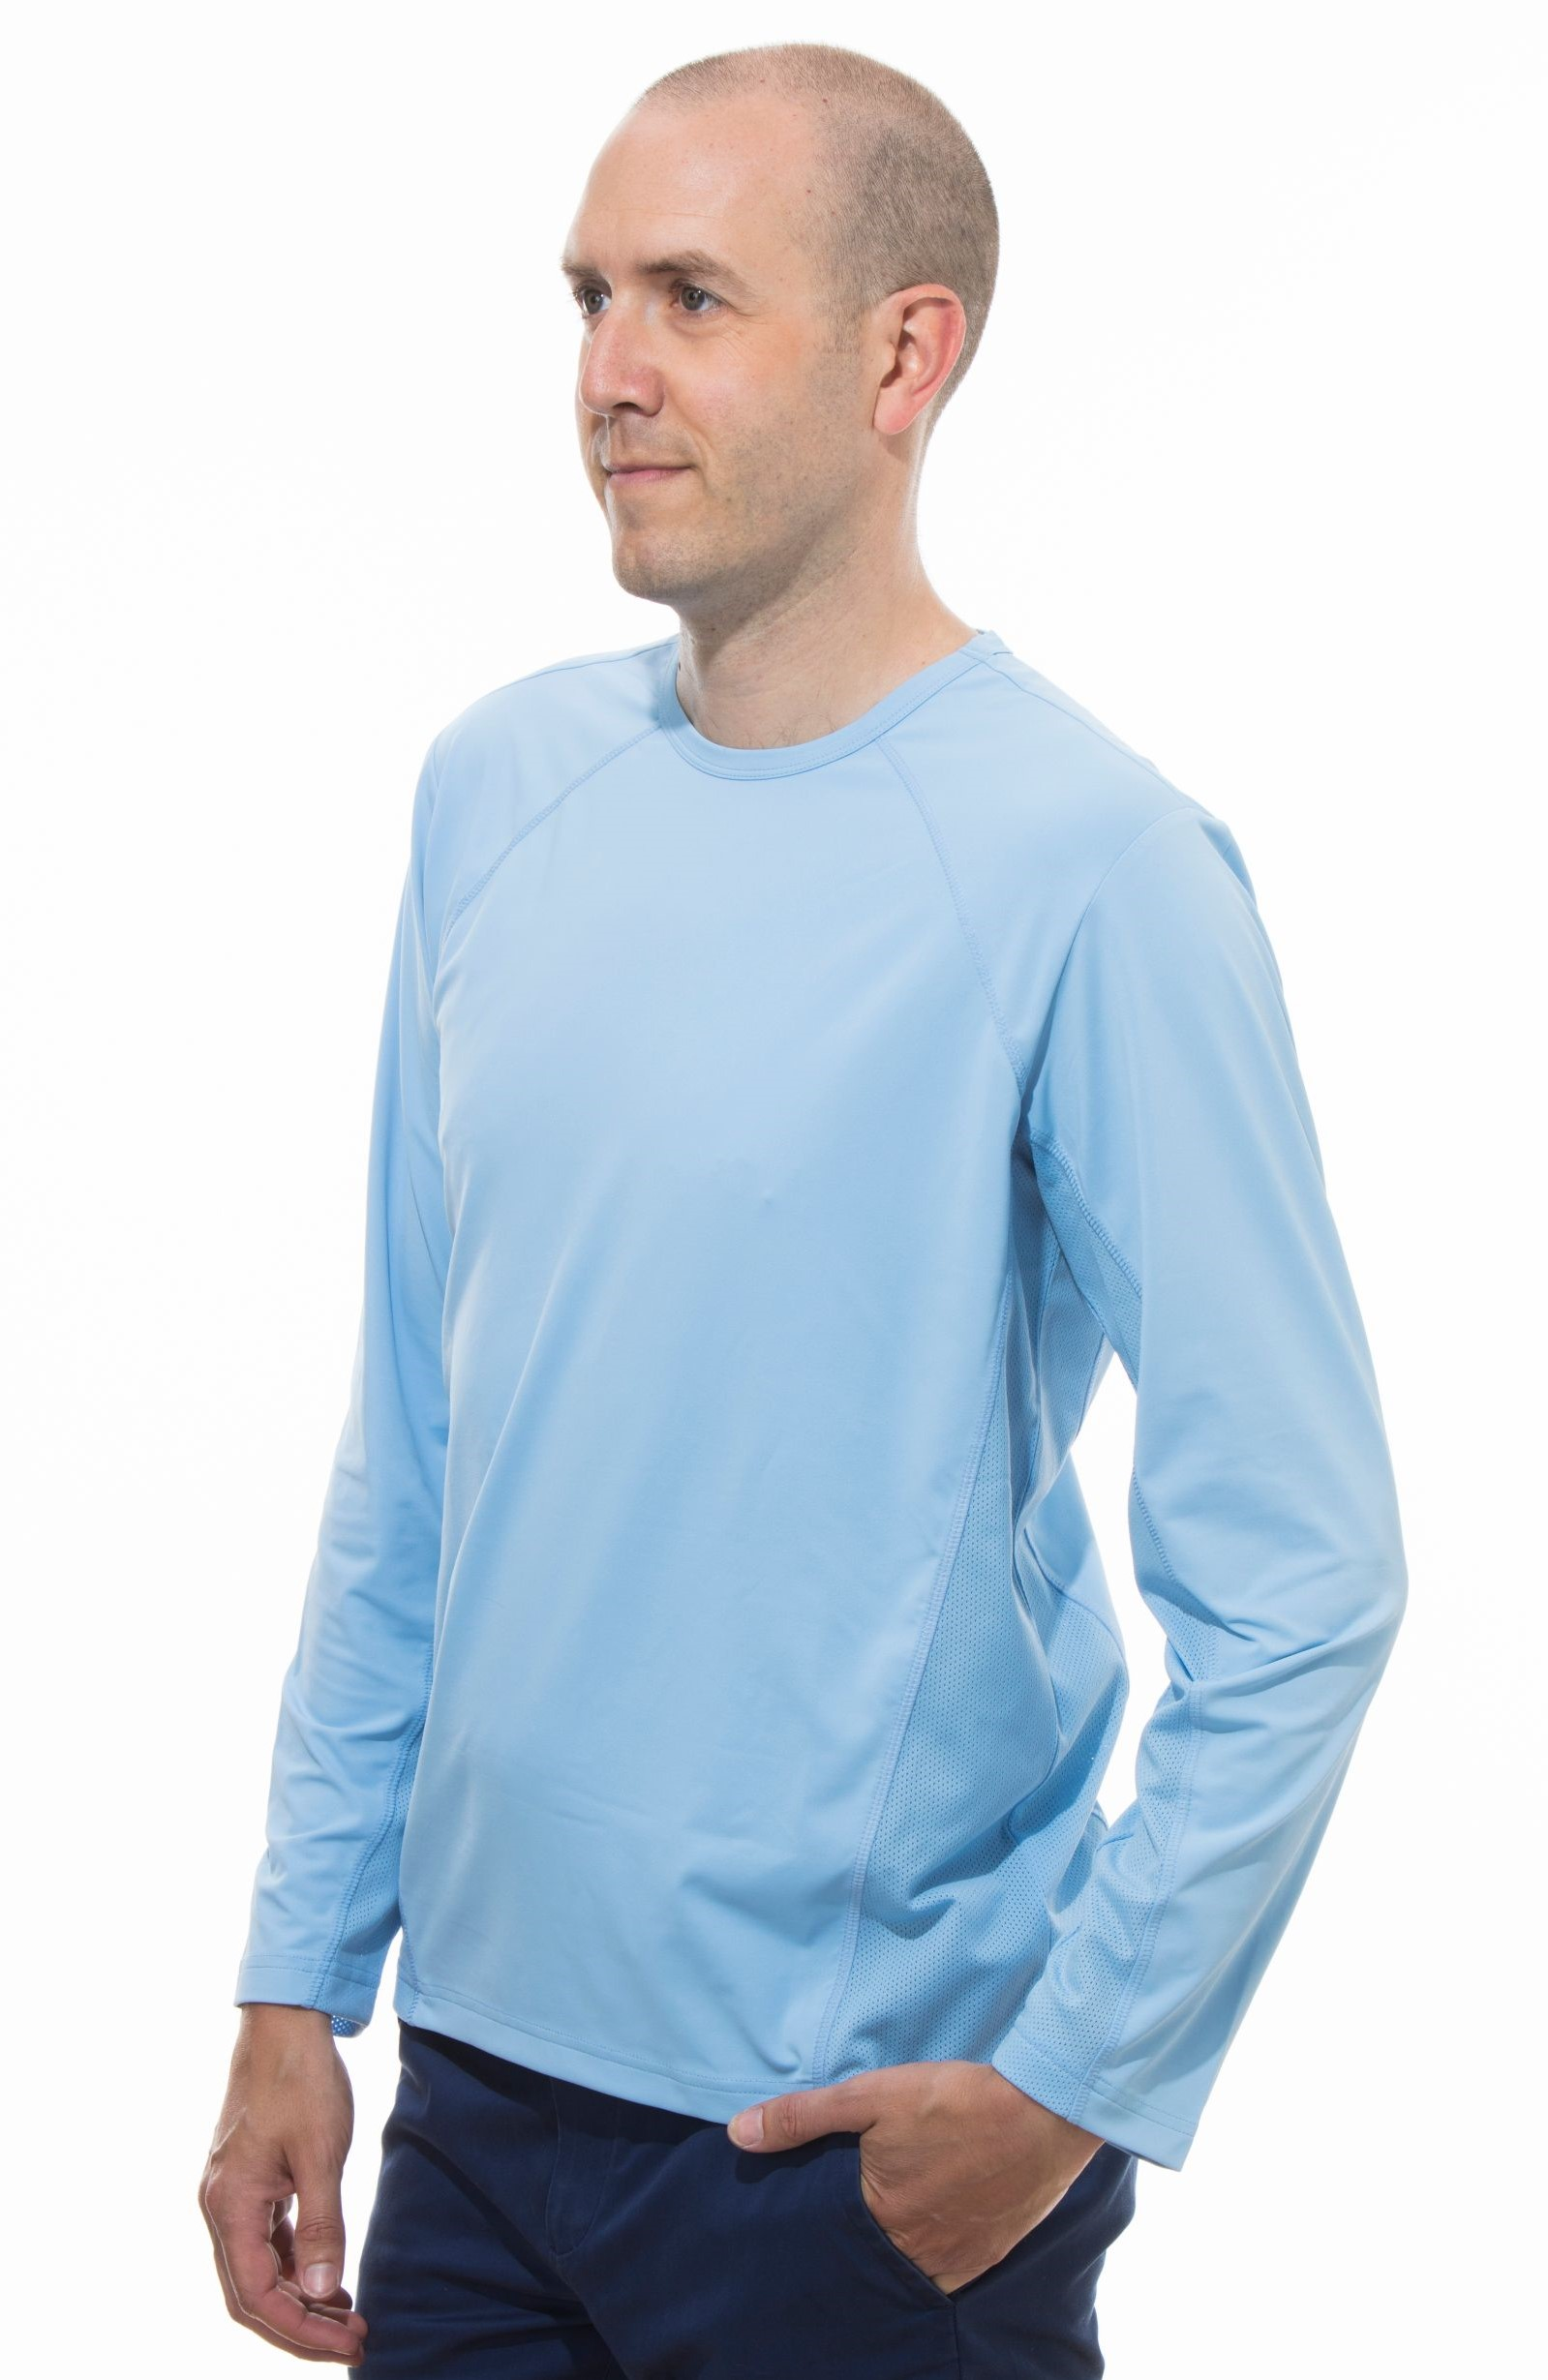 900825 SanSoleil SolCool Long Sleeve Ten